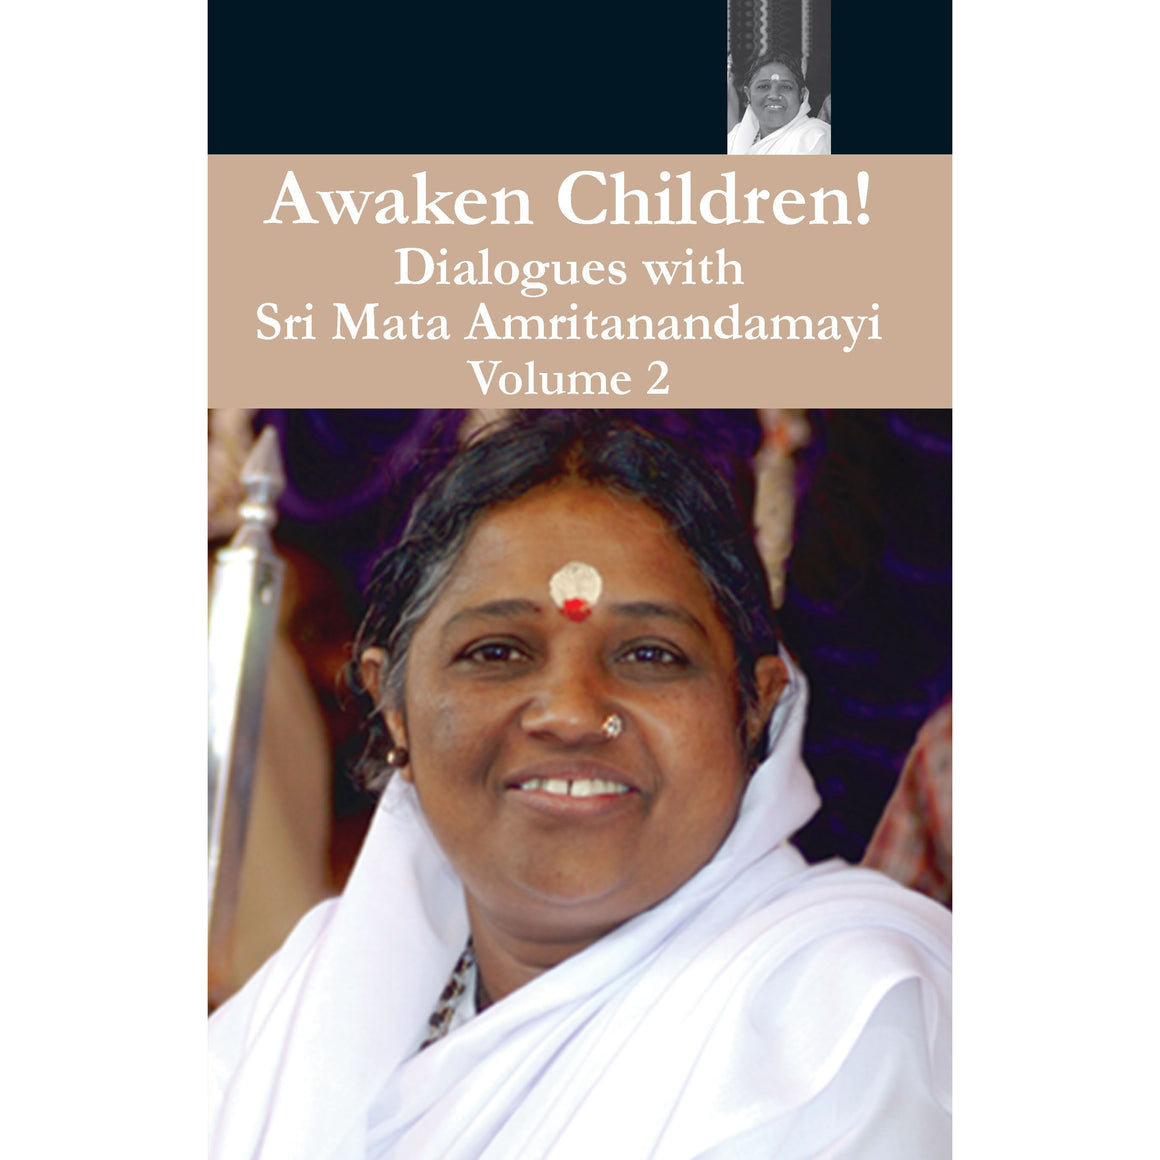 Awaken Children!, Vol. 02